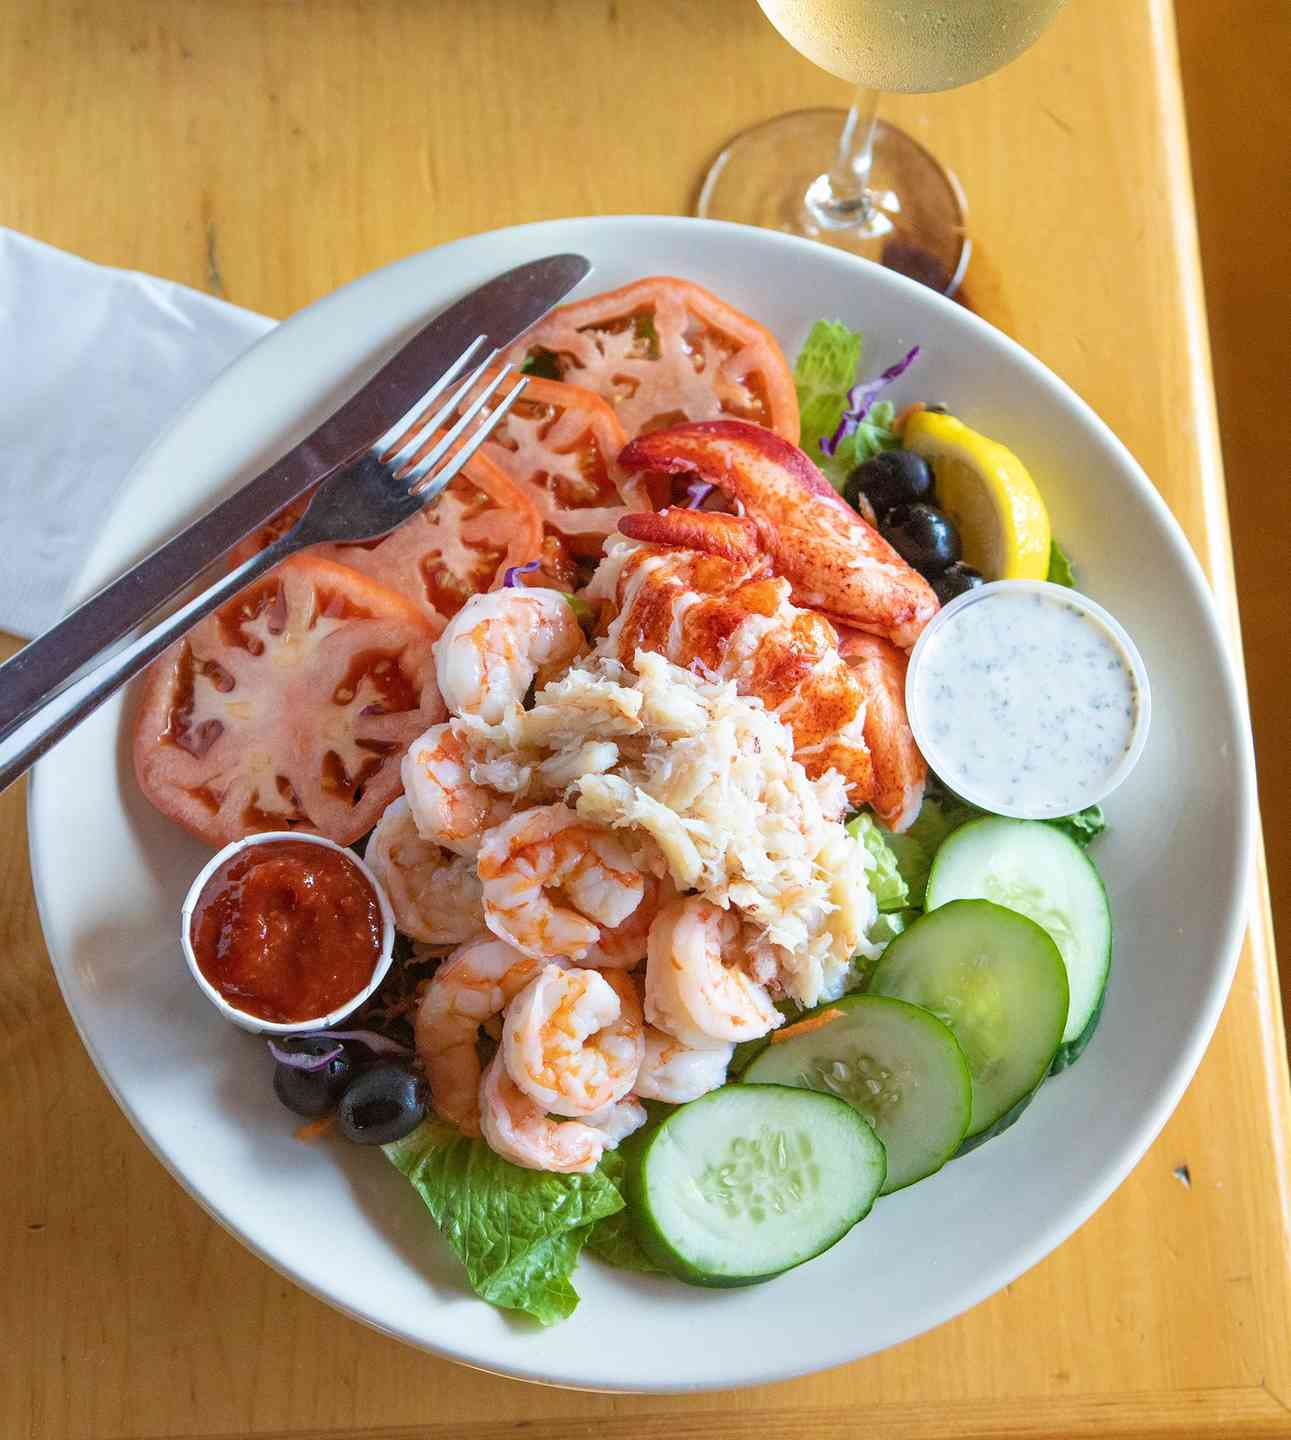 Chilled Combination Seafood Entree Salad